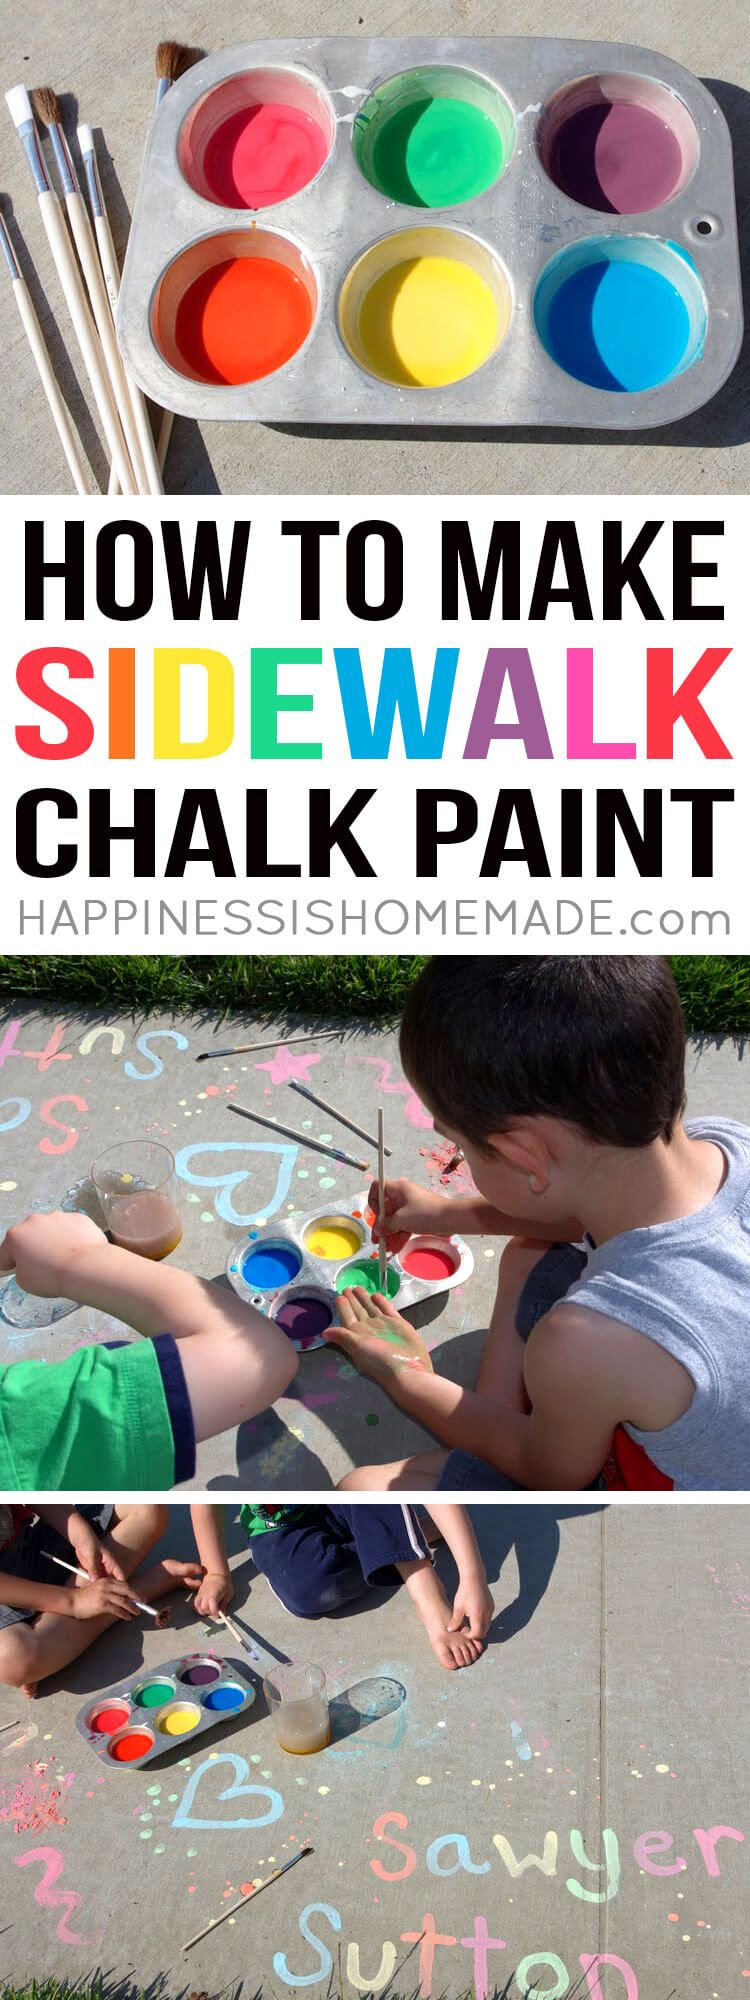 Learn how to make sidewalk chalk paint and keep your children entertained all day long with this quick and easy kids craft activity! Great summer kids craft project! via @hiHomemadeBlog